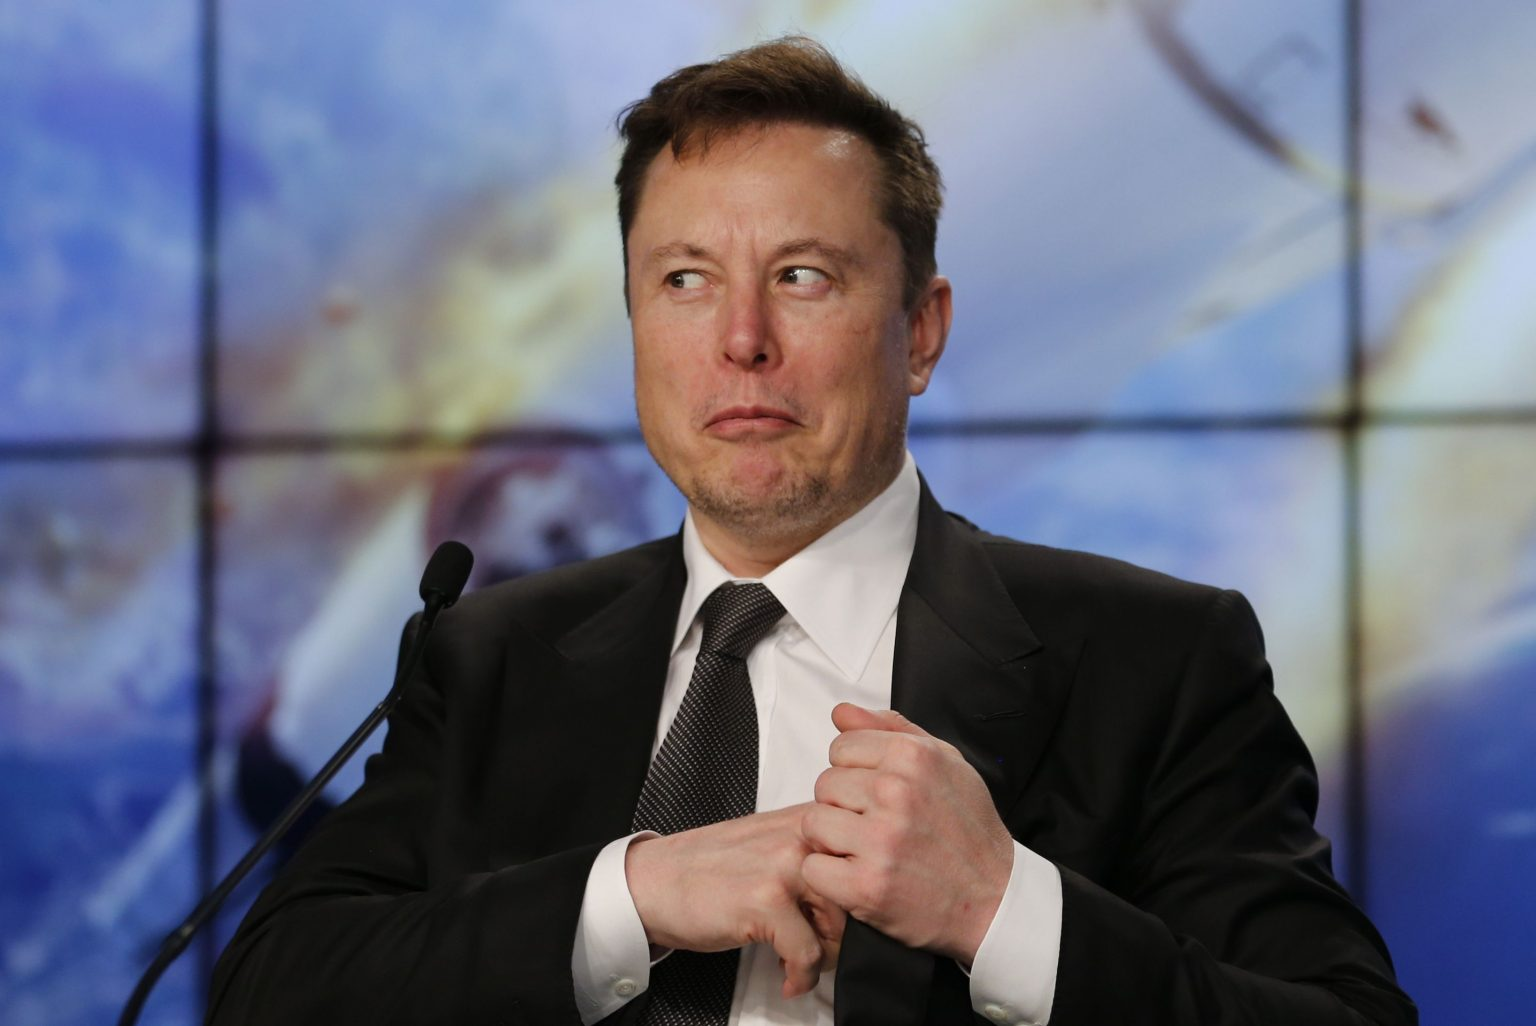 Elon Musk unfazed by rumored possibility of SEC probe into Dogecoin tweets